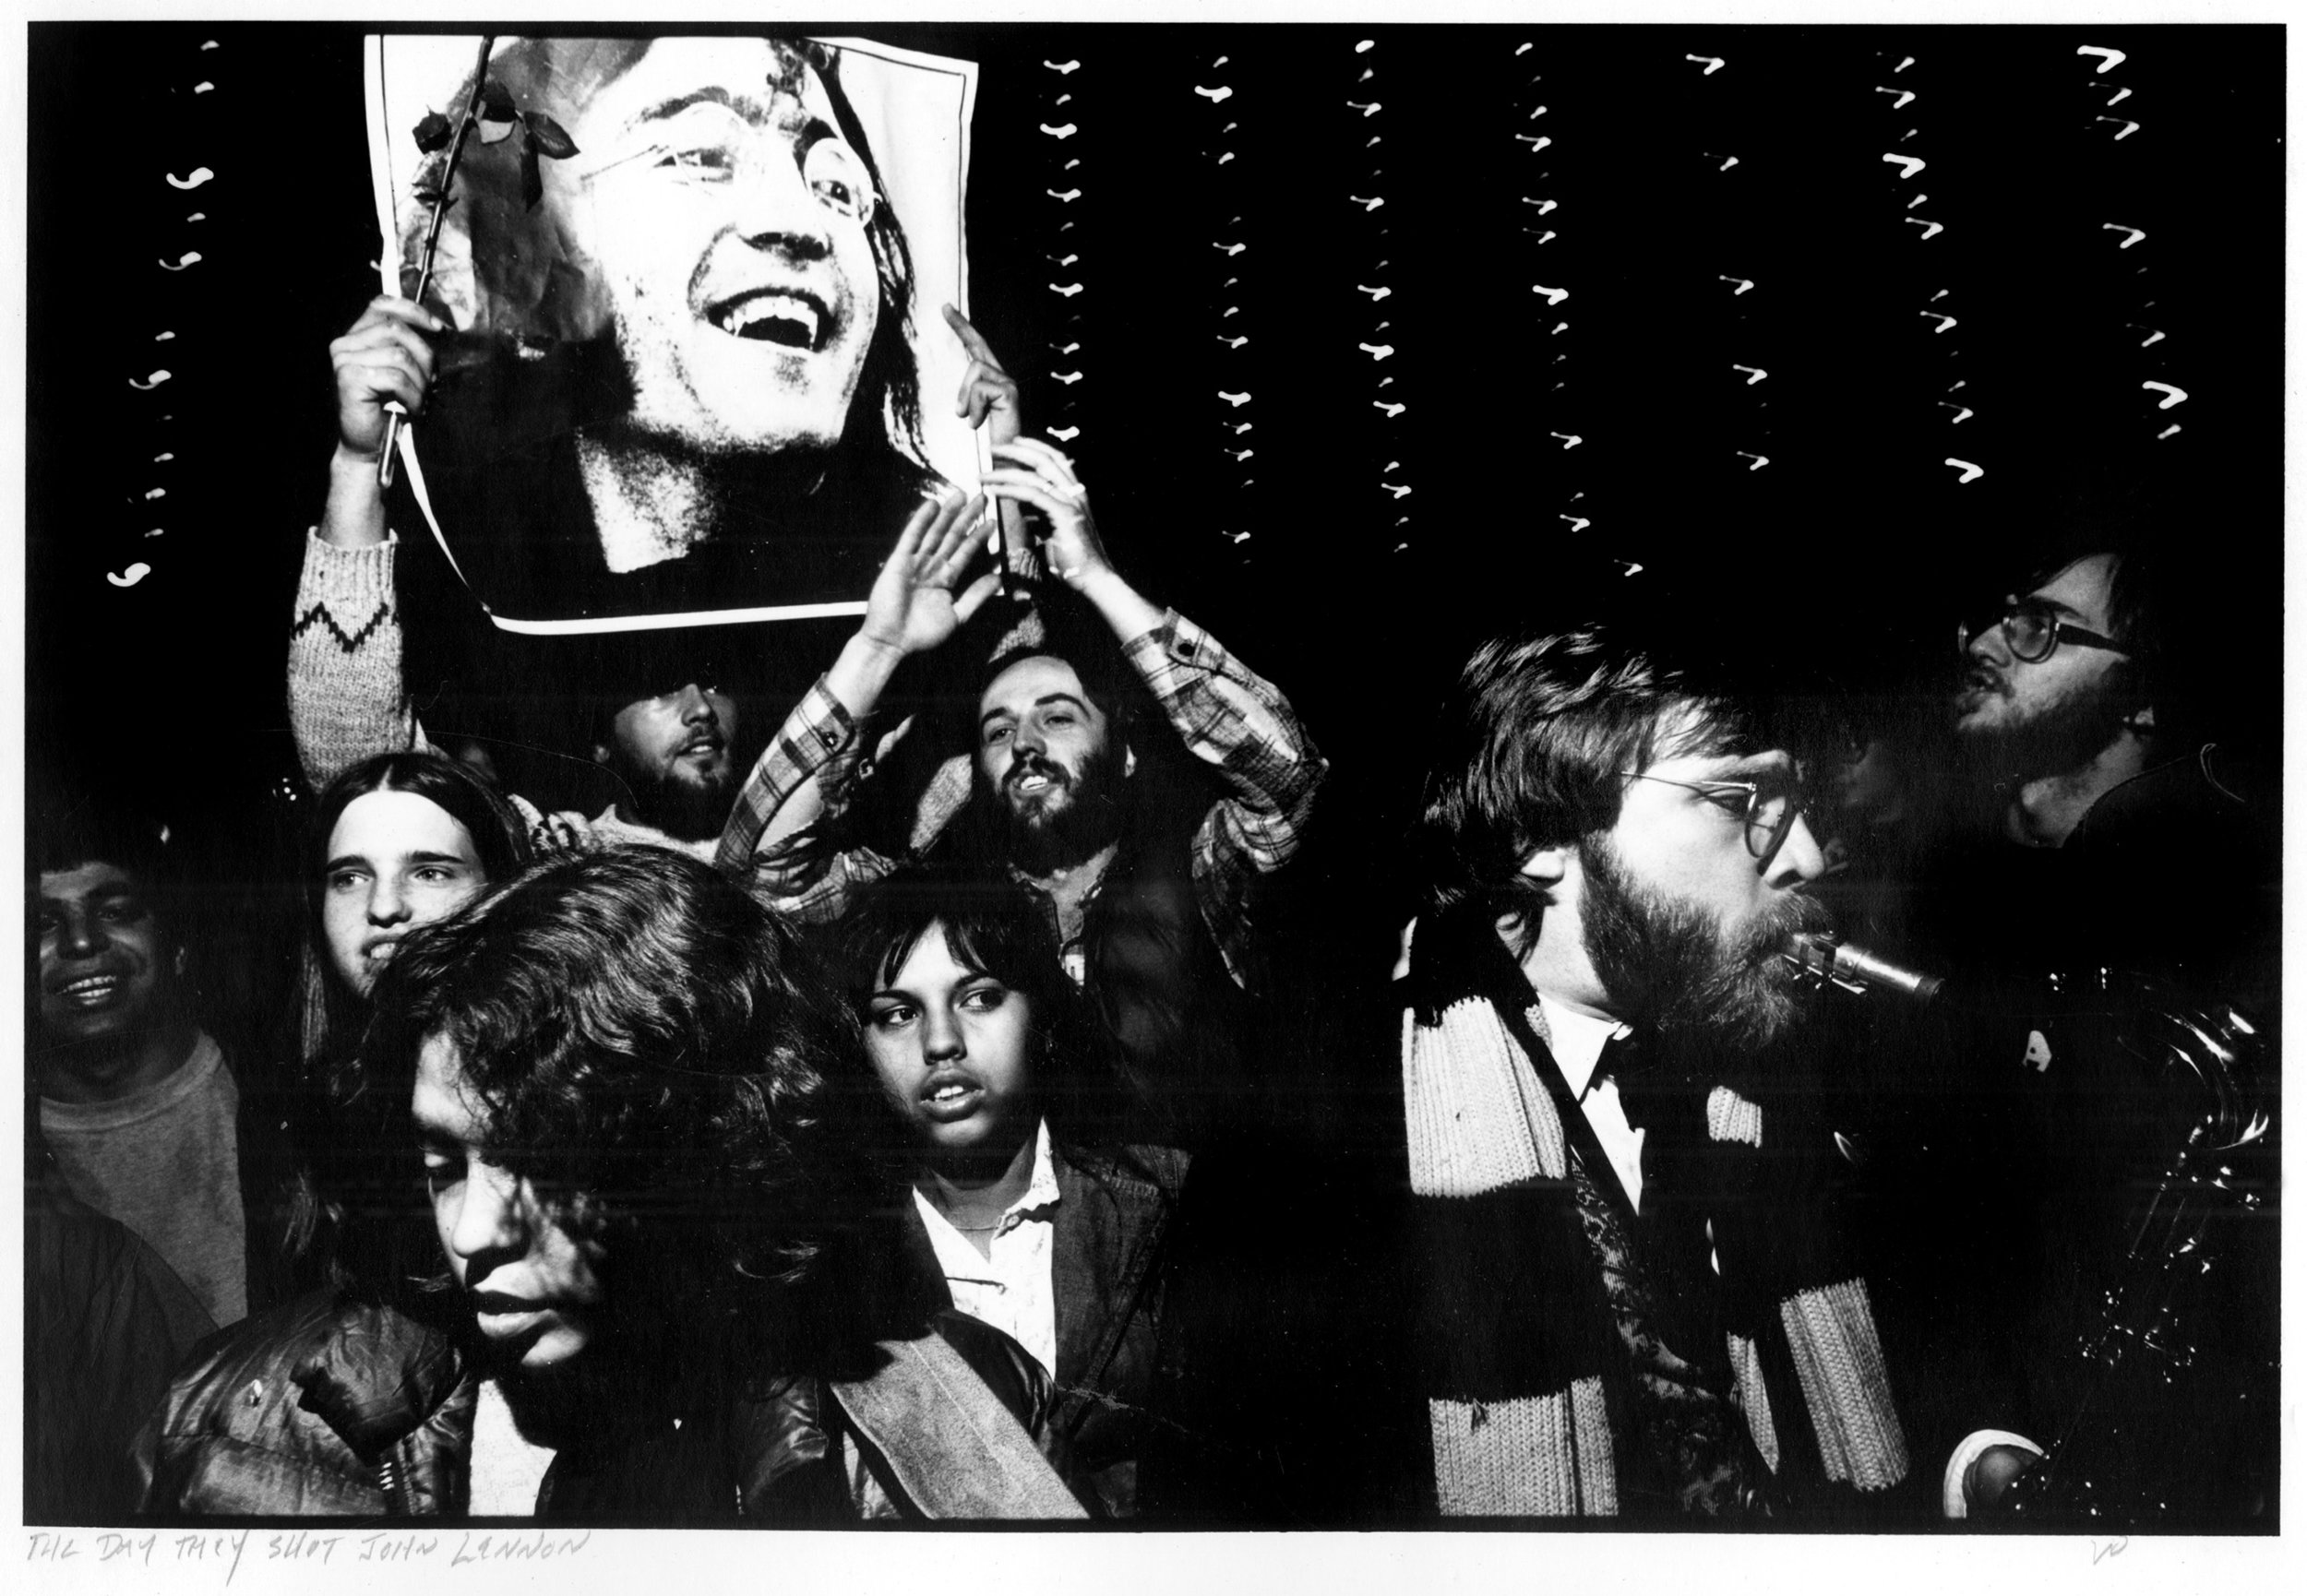 The Day John Lennon Died, December 8, 1980, Zilker Park, Austin. Published as spread in The Village Voice.